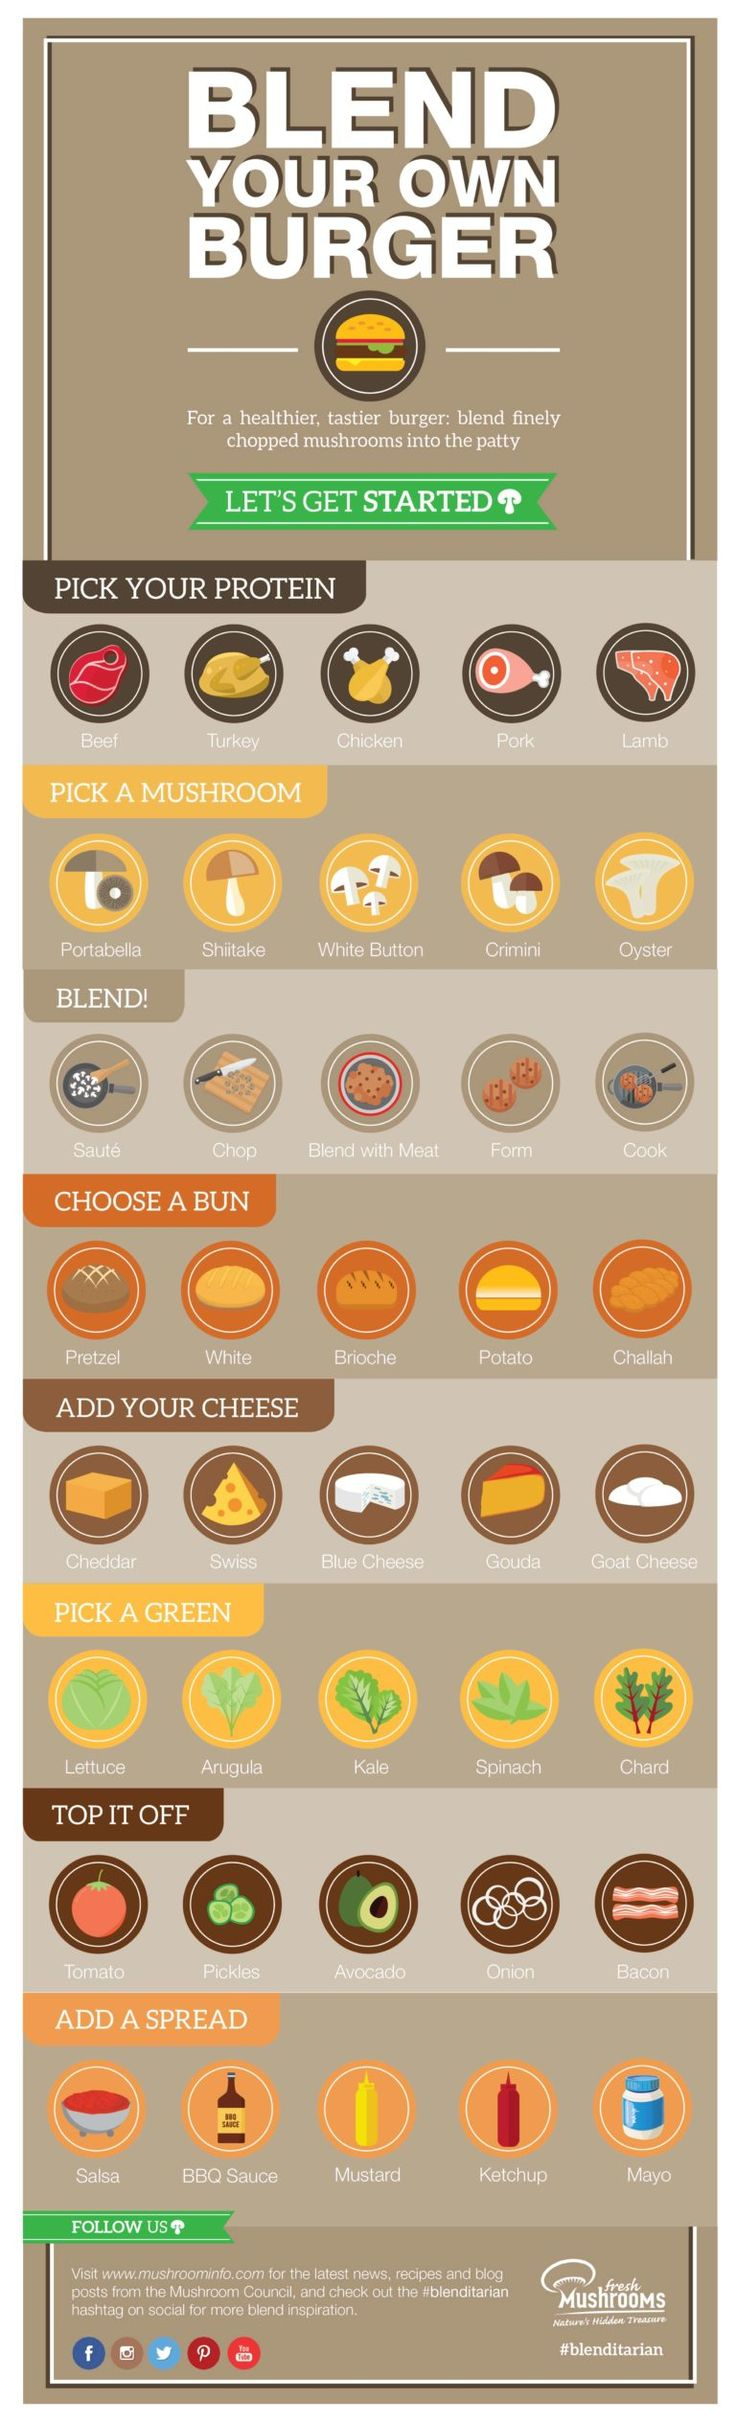 Build-Your-Own-Burger-Infographic